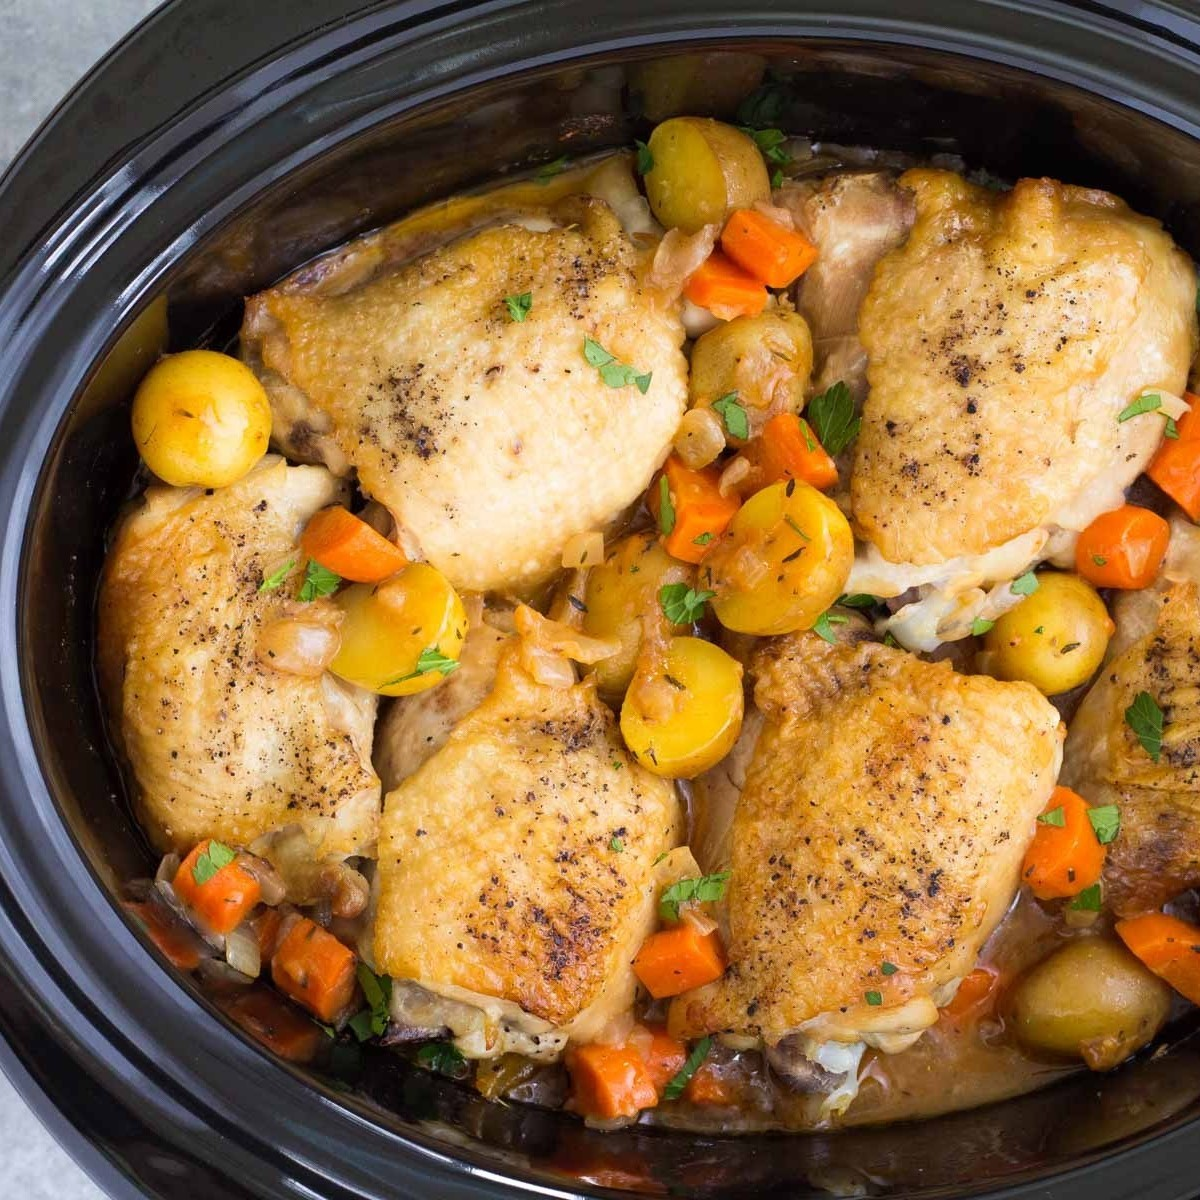 Slow cook Chicken Breast with Vegetable